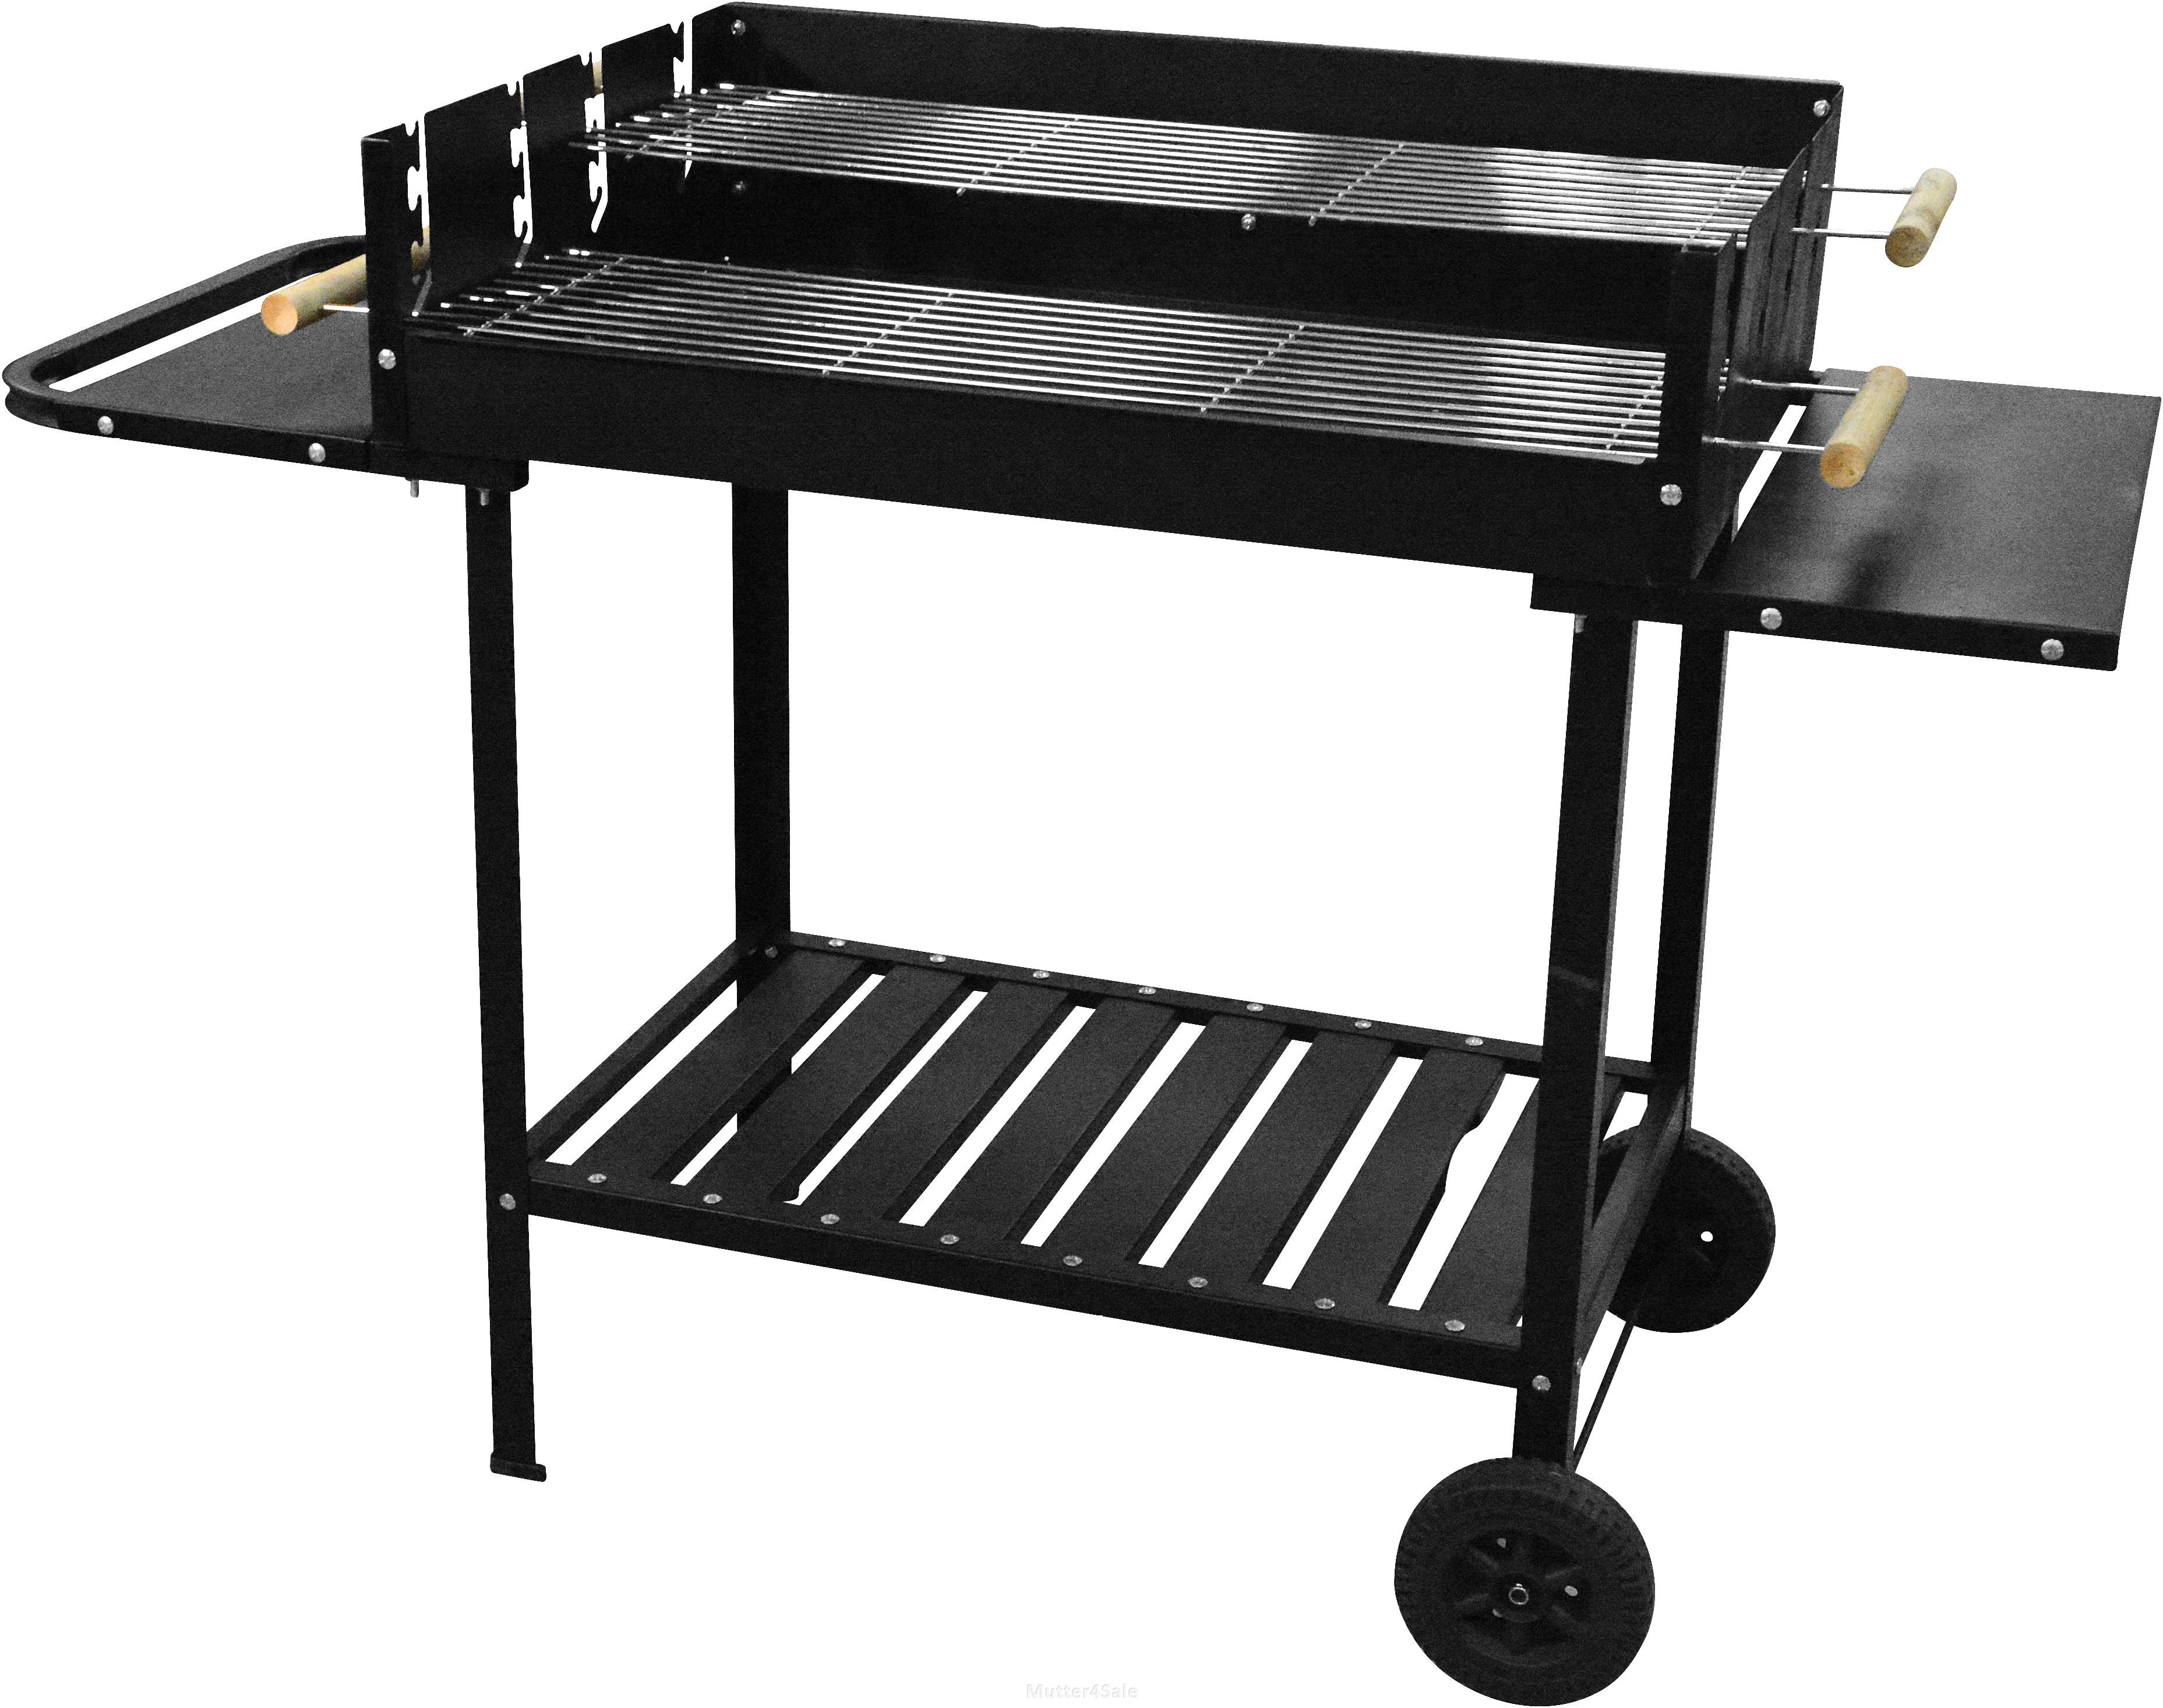 holzkohlegrill grillwagen grill eckig holzkohle standgrill edelstahl jumbo bbq ebay. Black Bedroom Furniture Sets. Home Design Ideas